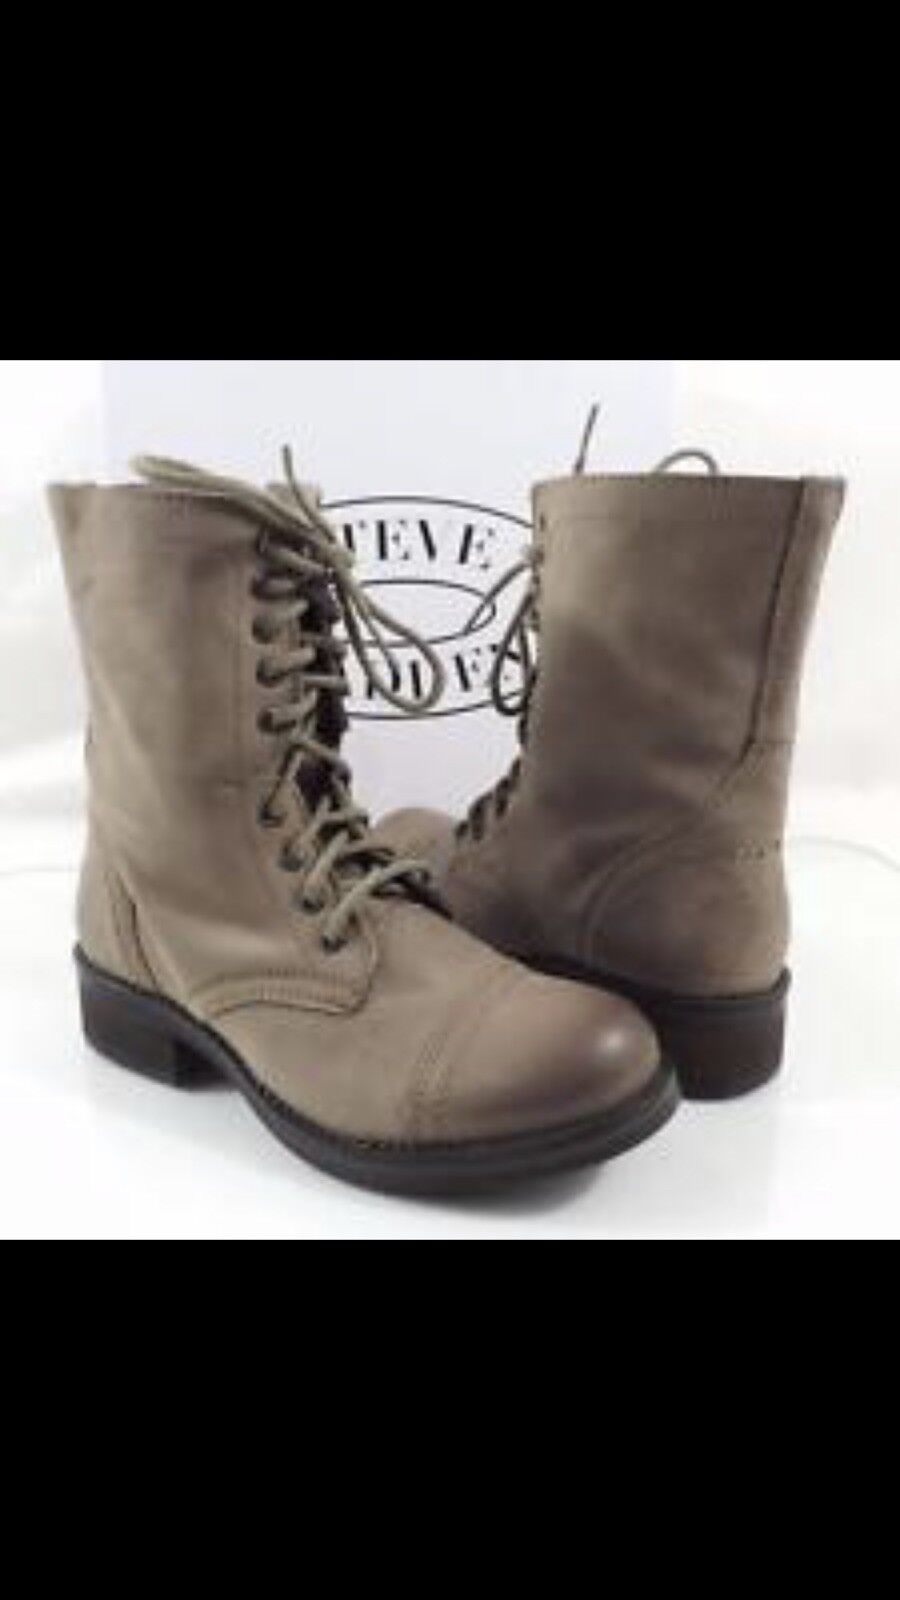 62ee54752d3 Steve Madden Troopa 2.0 Leather Leather Leather Combat Boots CHOOSE ...